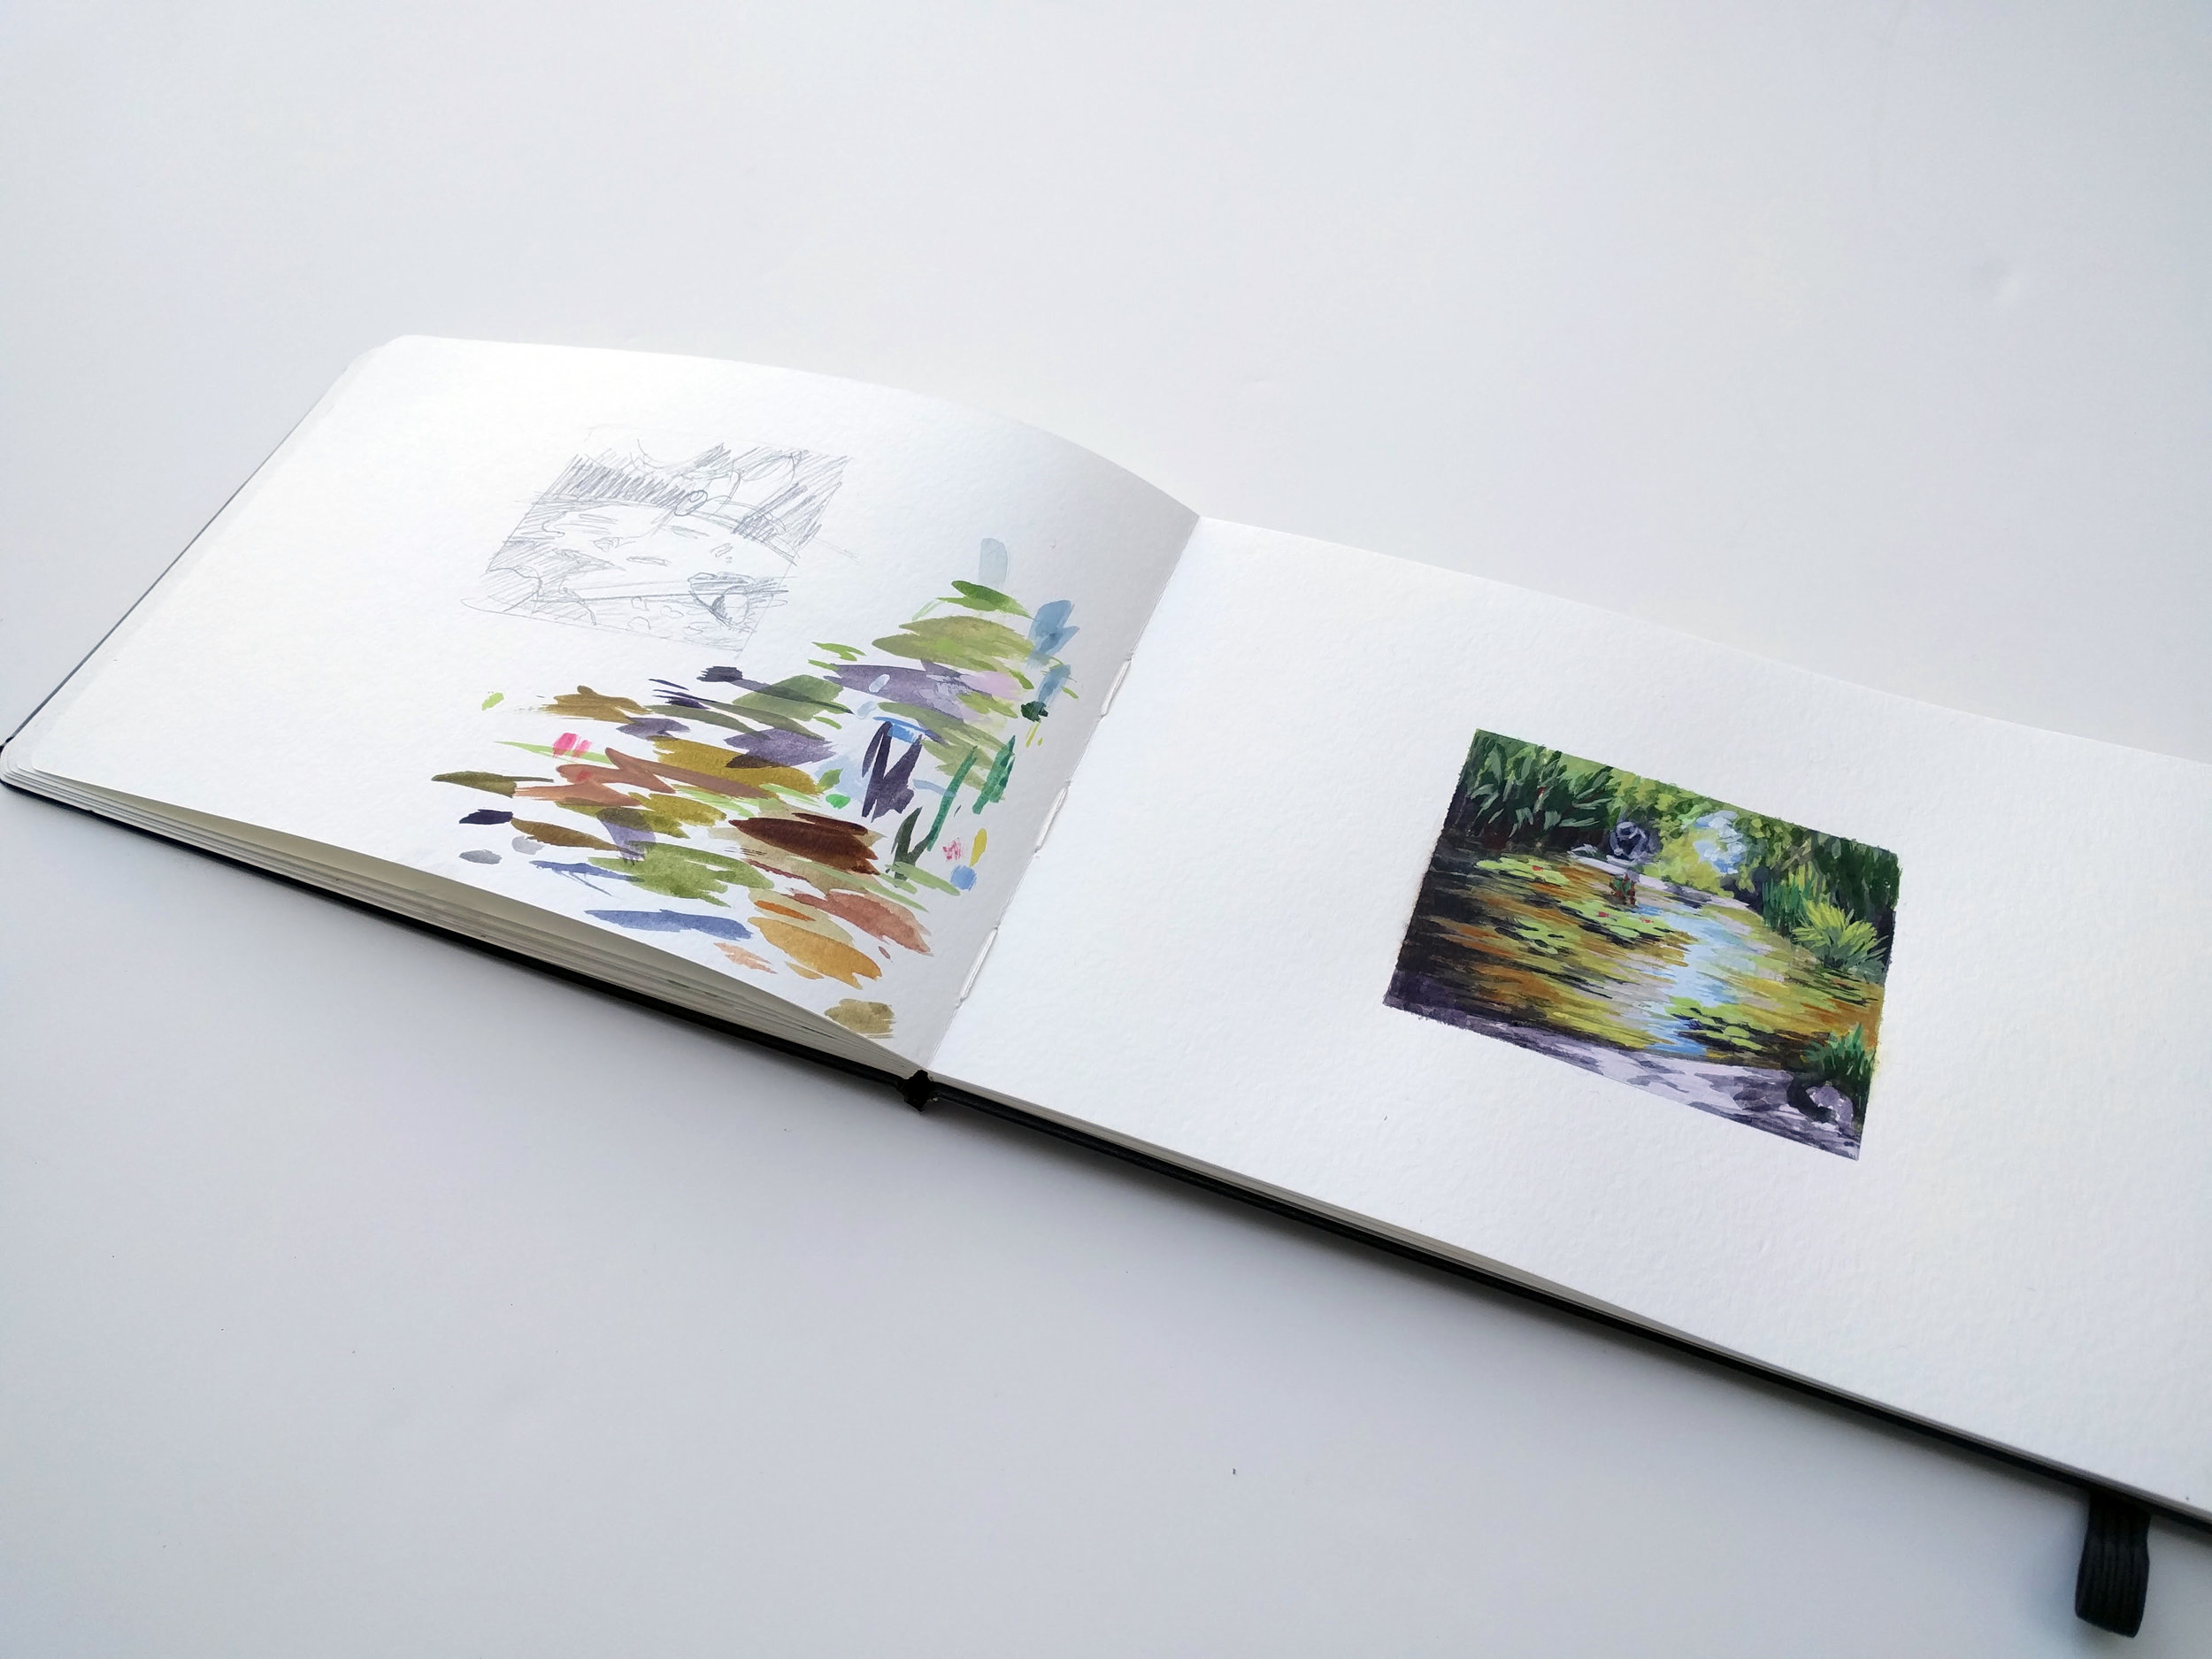 Sketchbook painting by My Small paintings at The Huntington Gardens